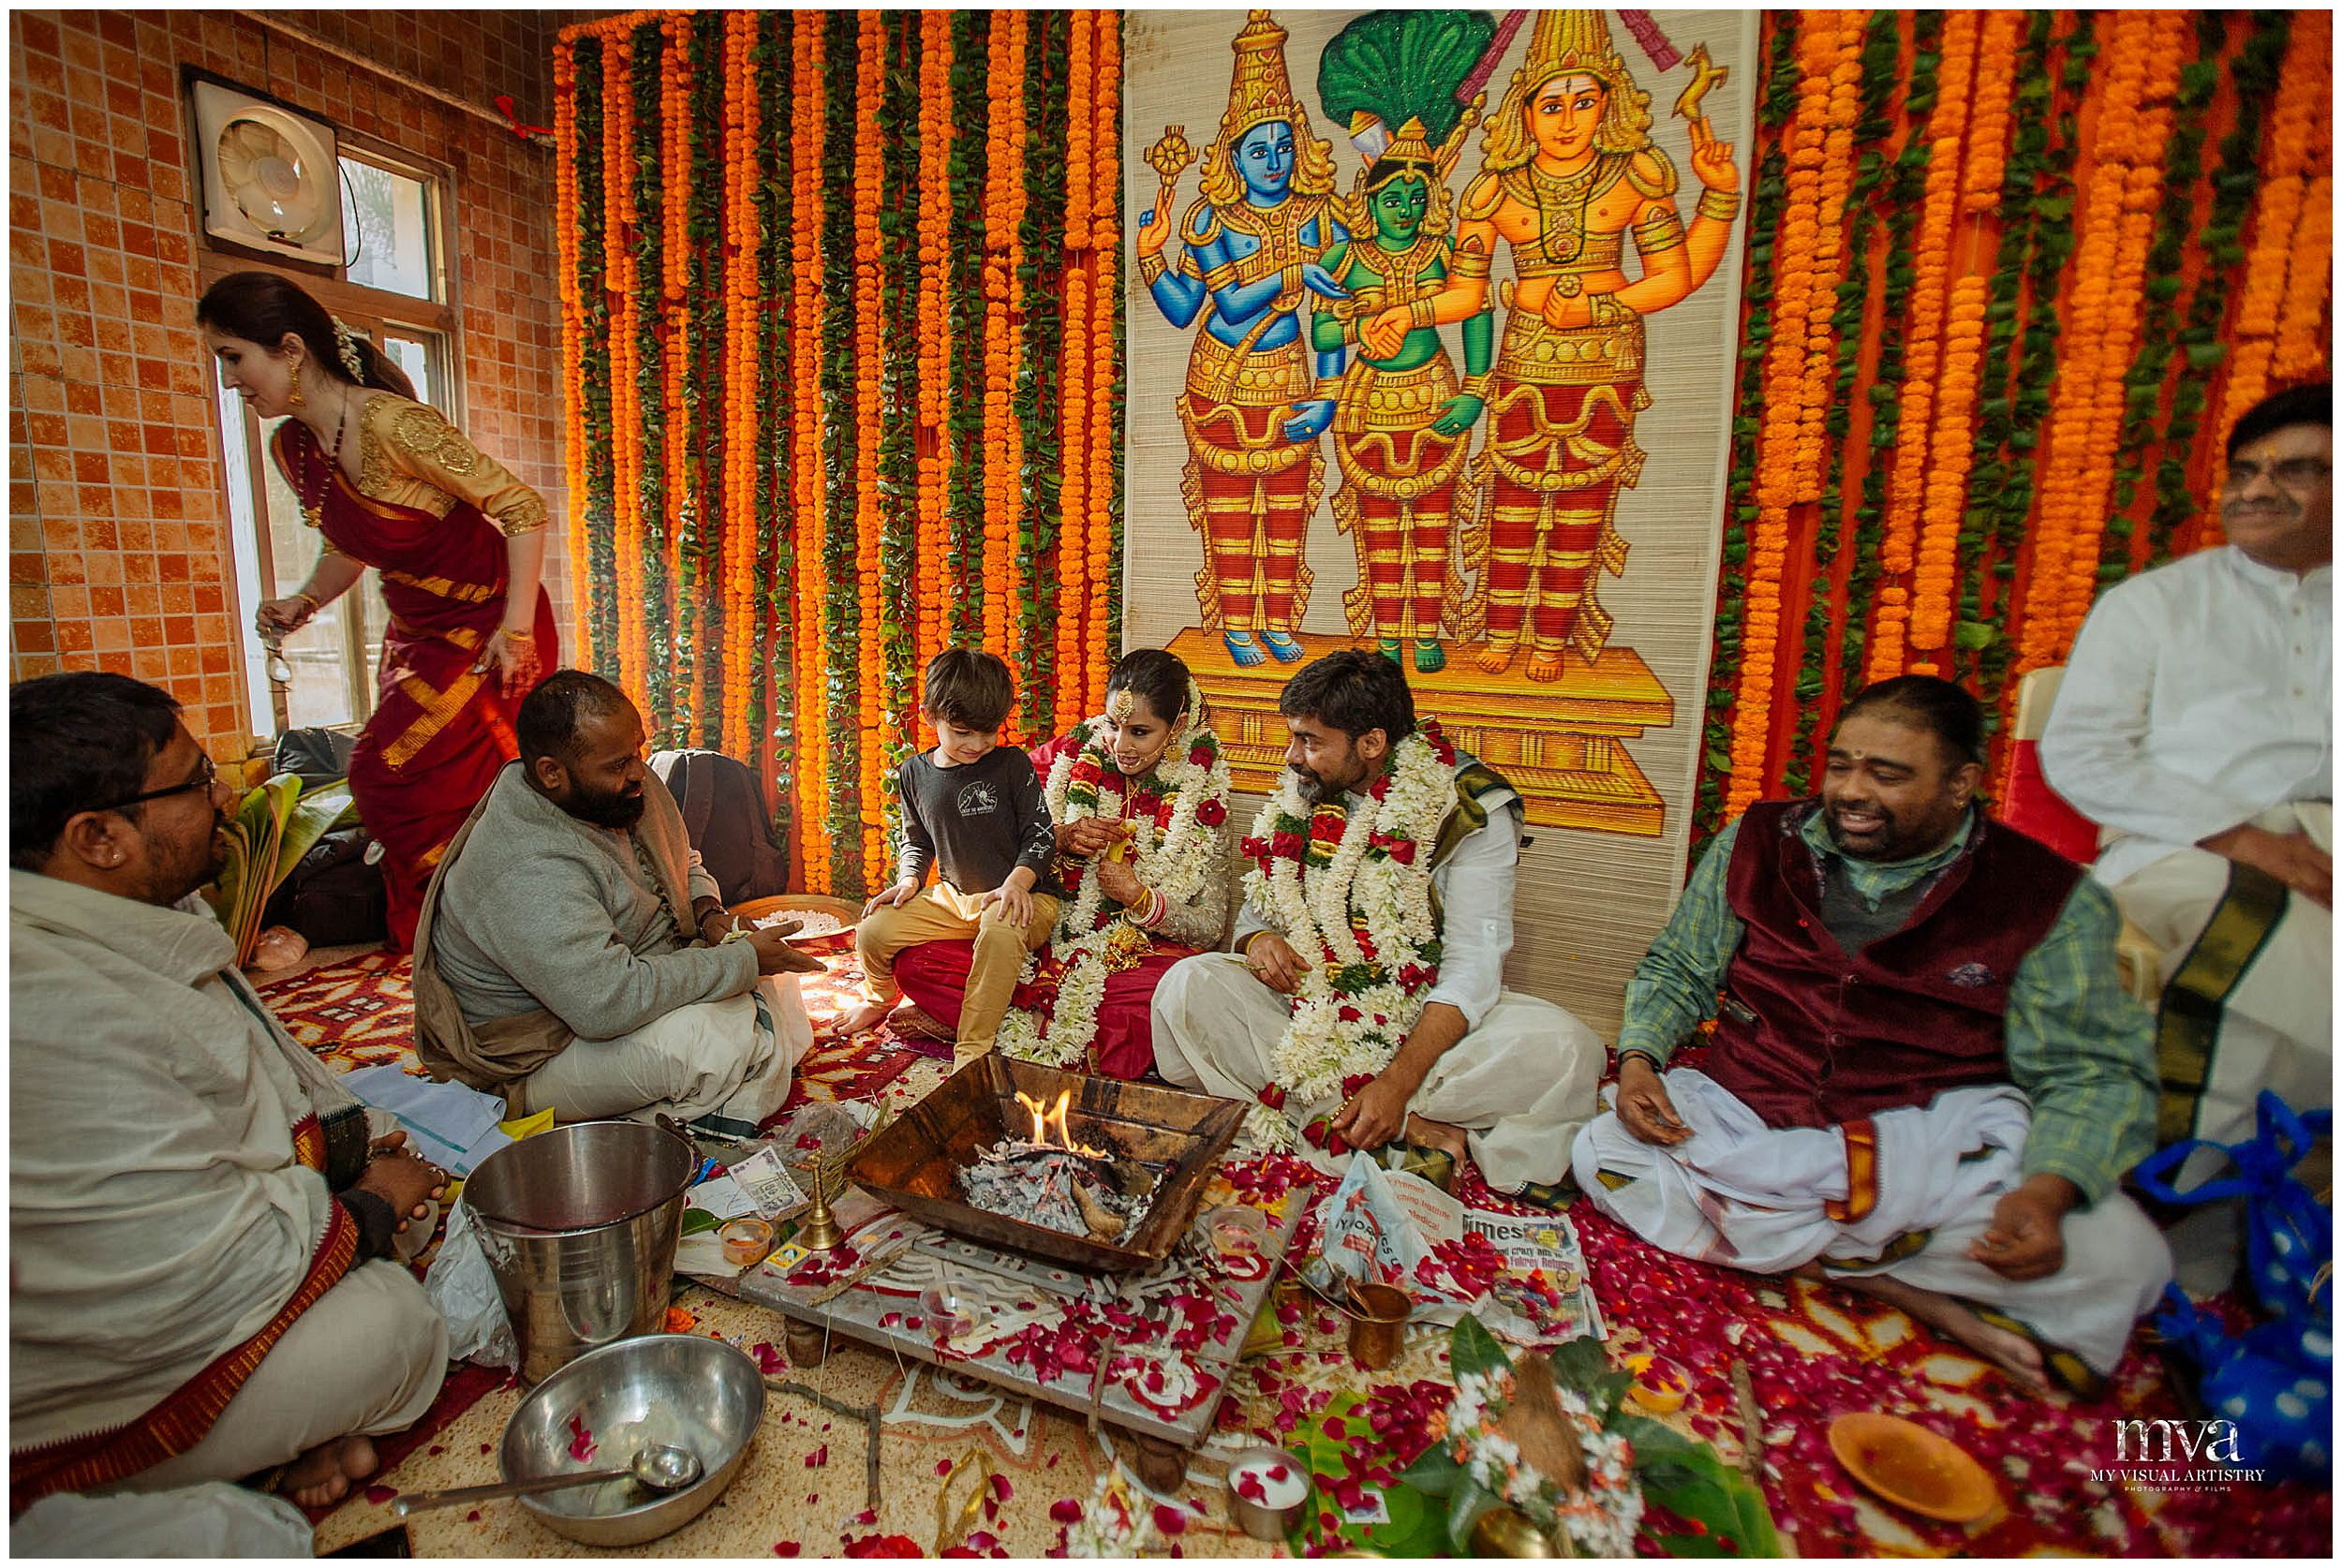 SAHIBA_KARTHIK_MYVISUALARTISTRY_WEDDING_PHOTOGRAPHY_MVA_KERALA_GURGAON_0040.jpg